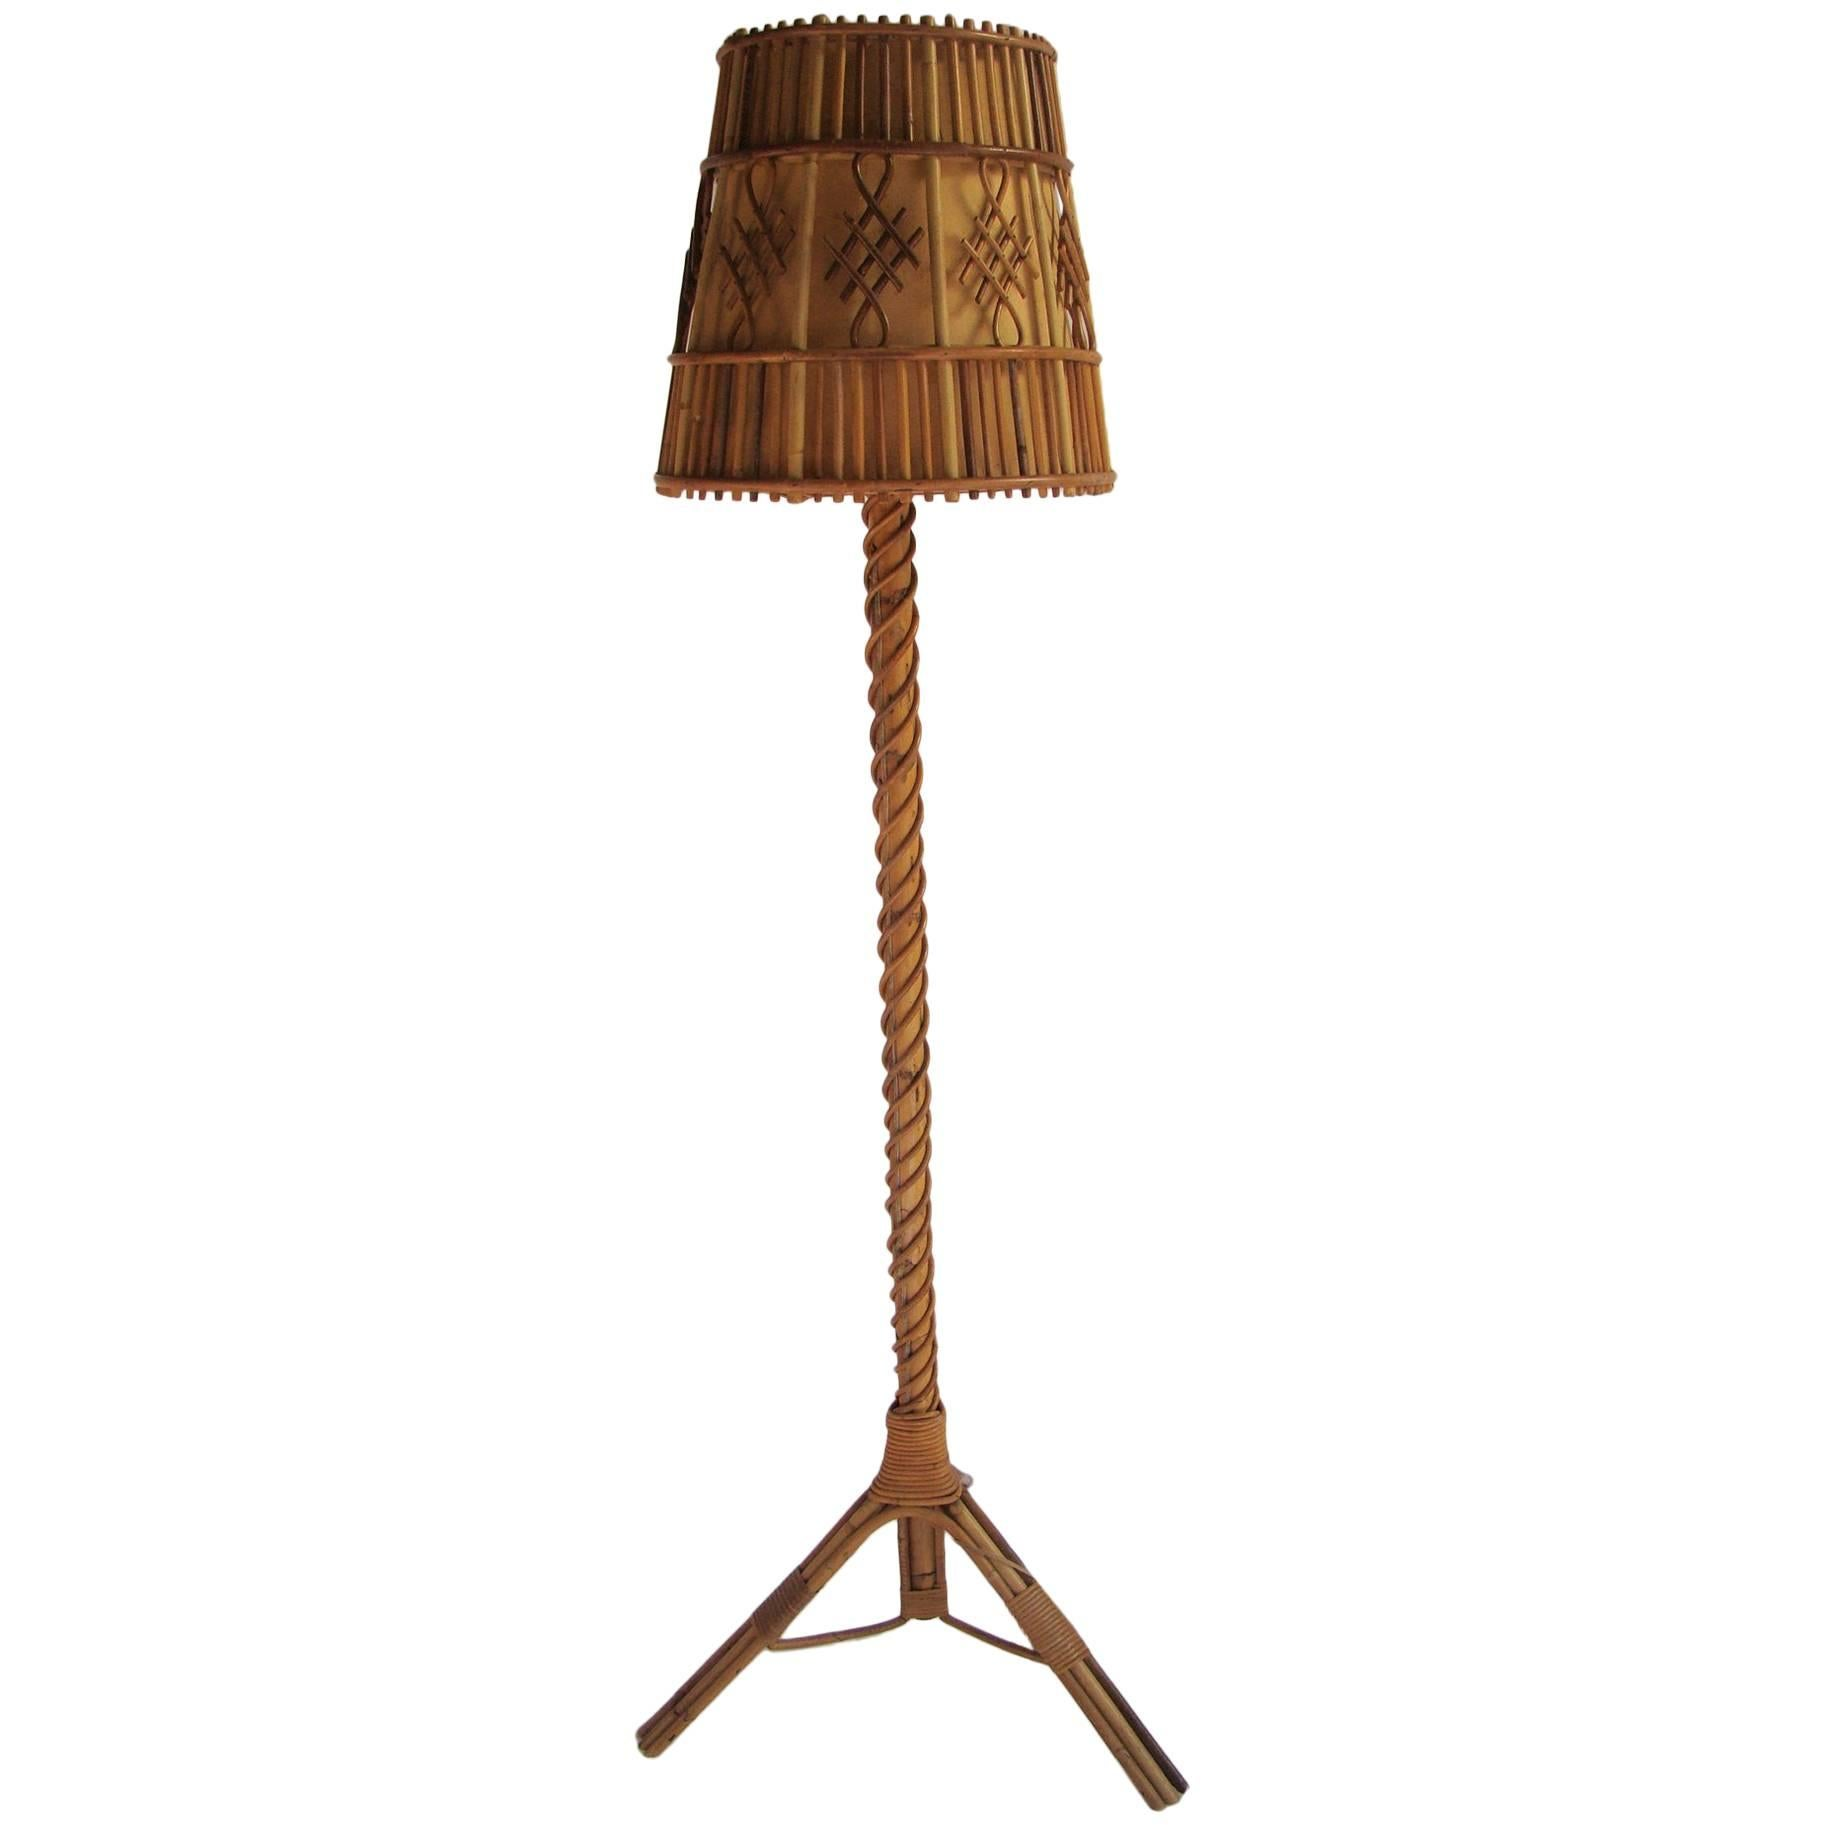 Nice 1960s Rattan Unique Floor Lamp